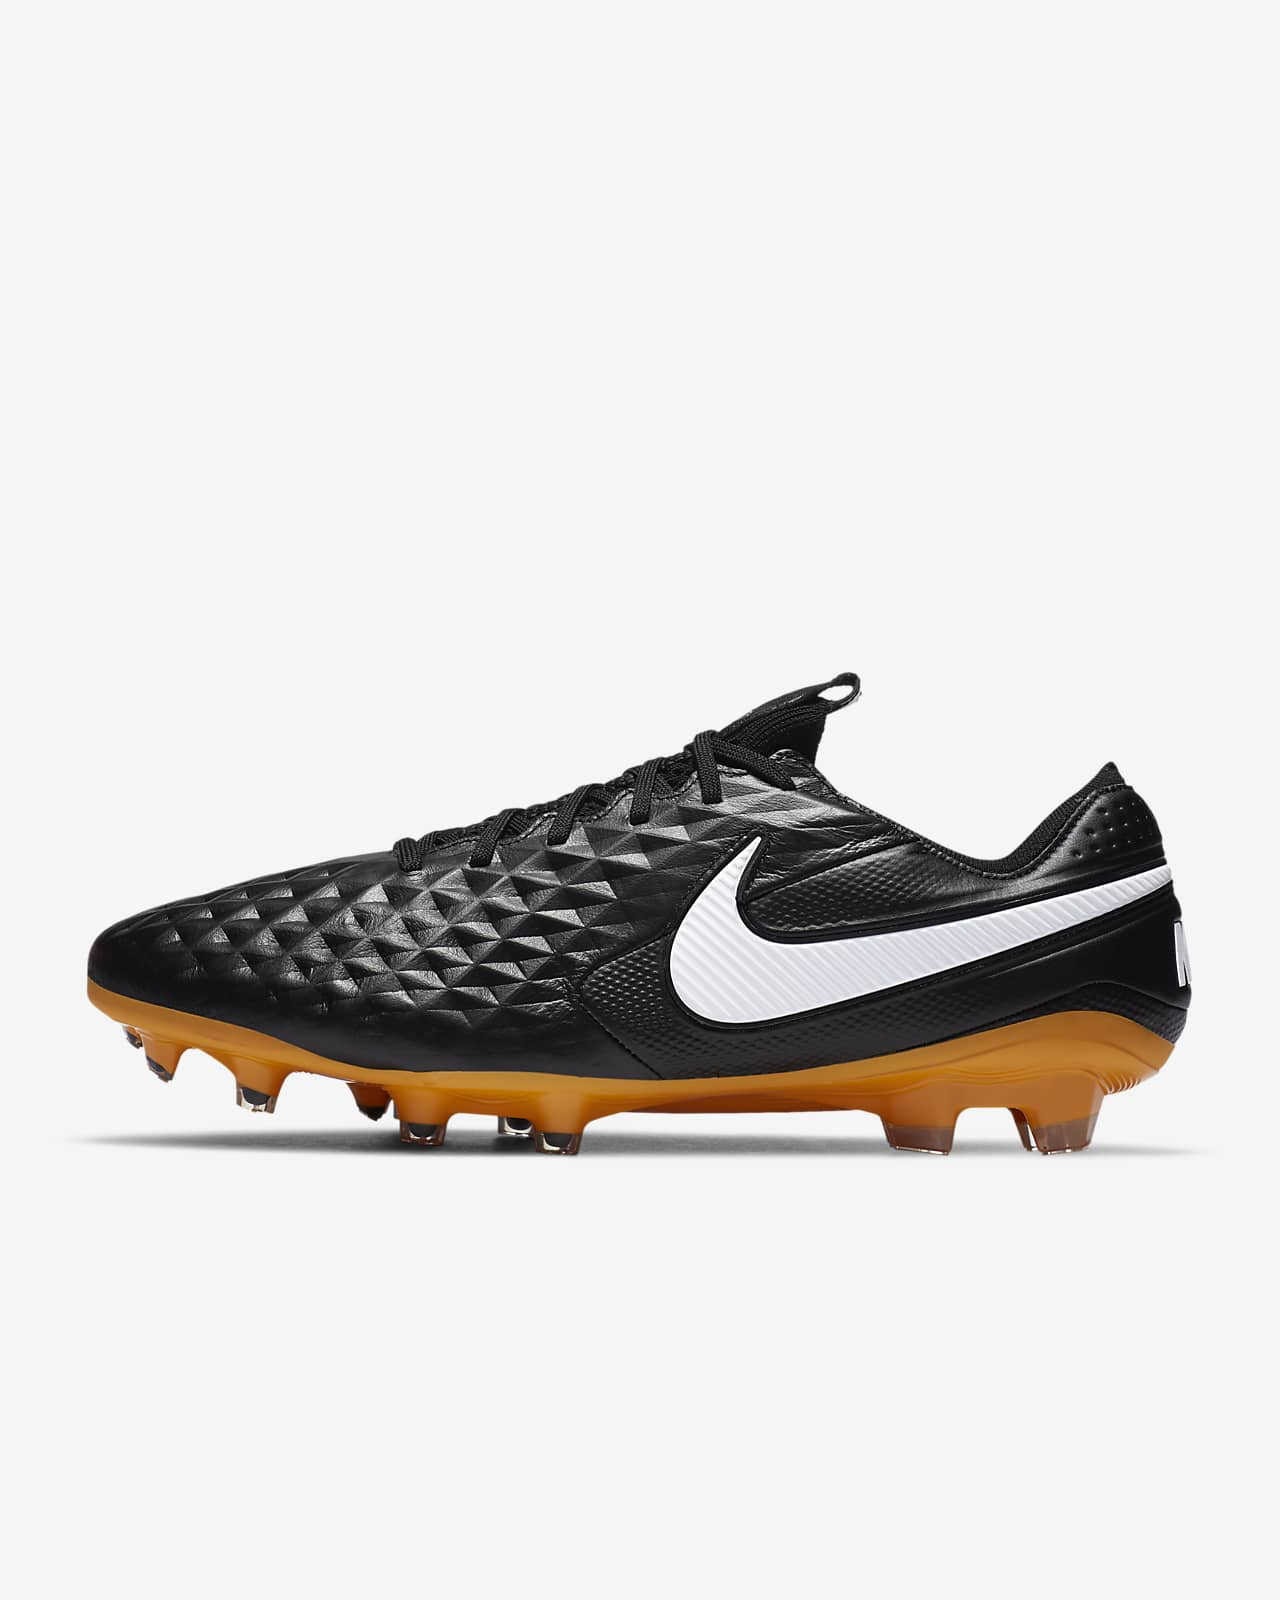 Chaussure de football à crampons pour terrain sec Nike Tiempo Legend 8 Elite Tech Craft FG